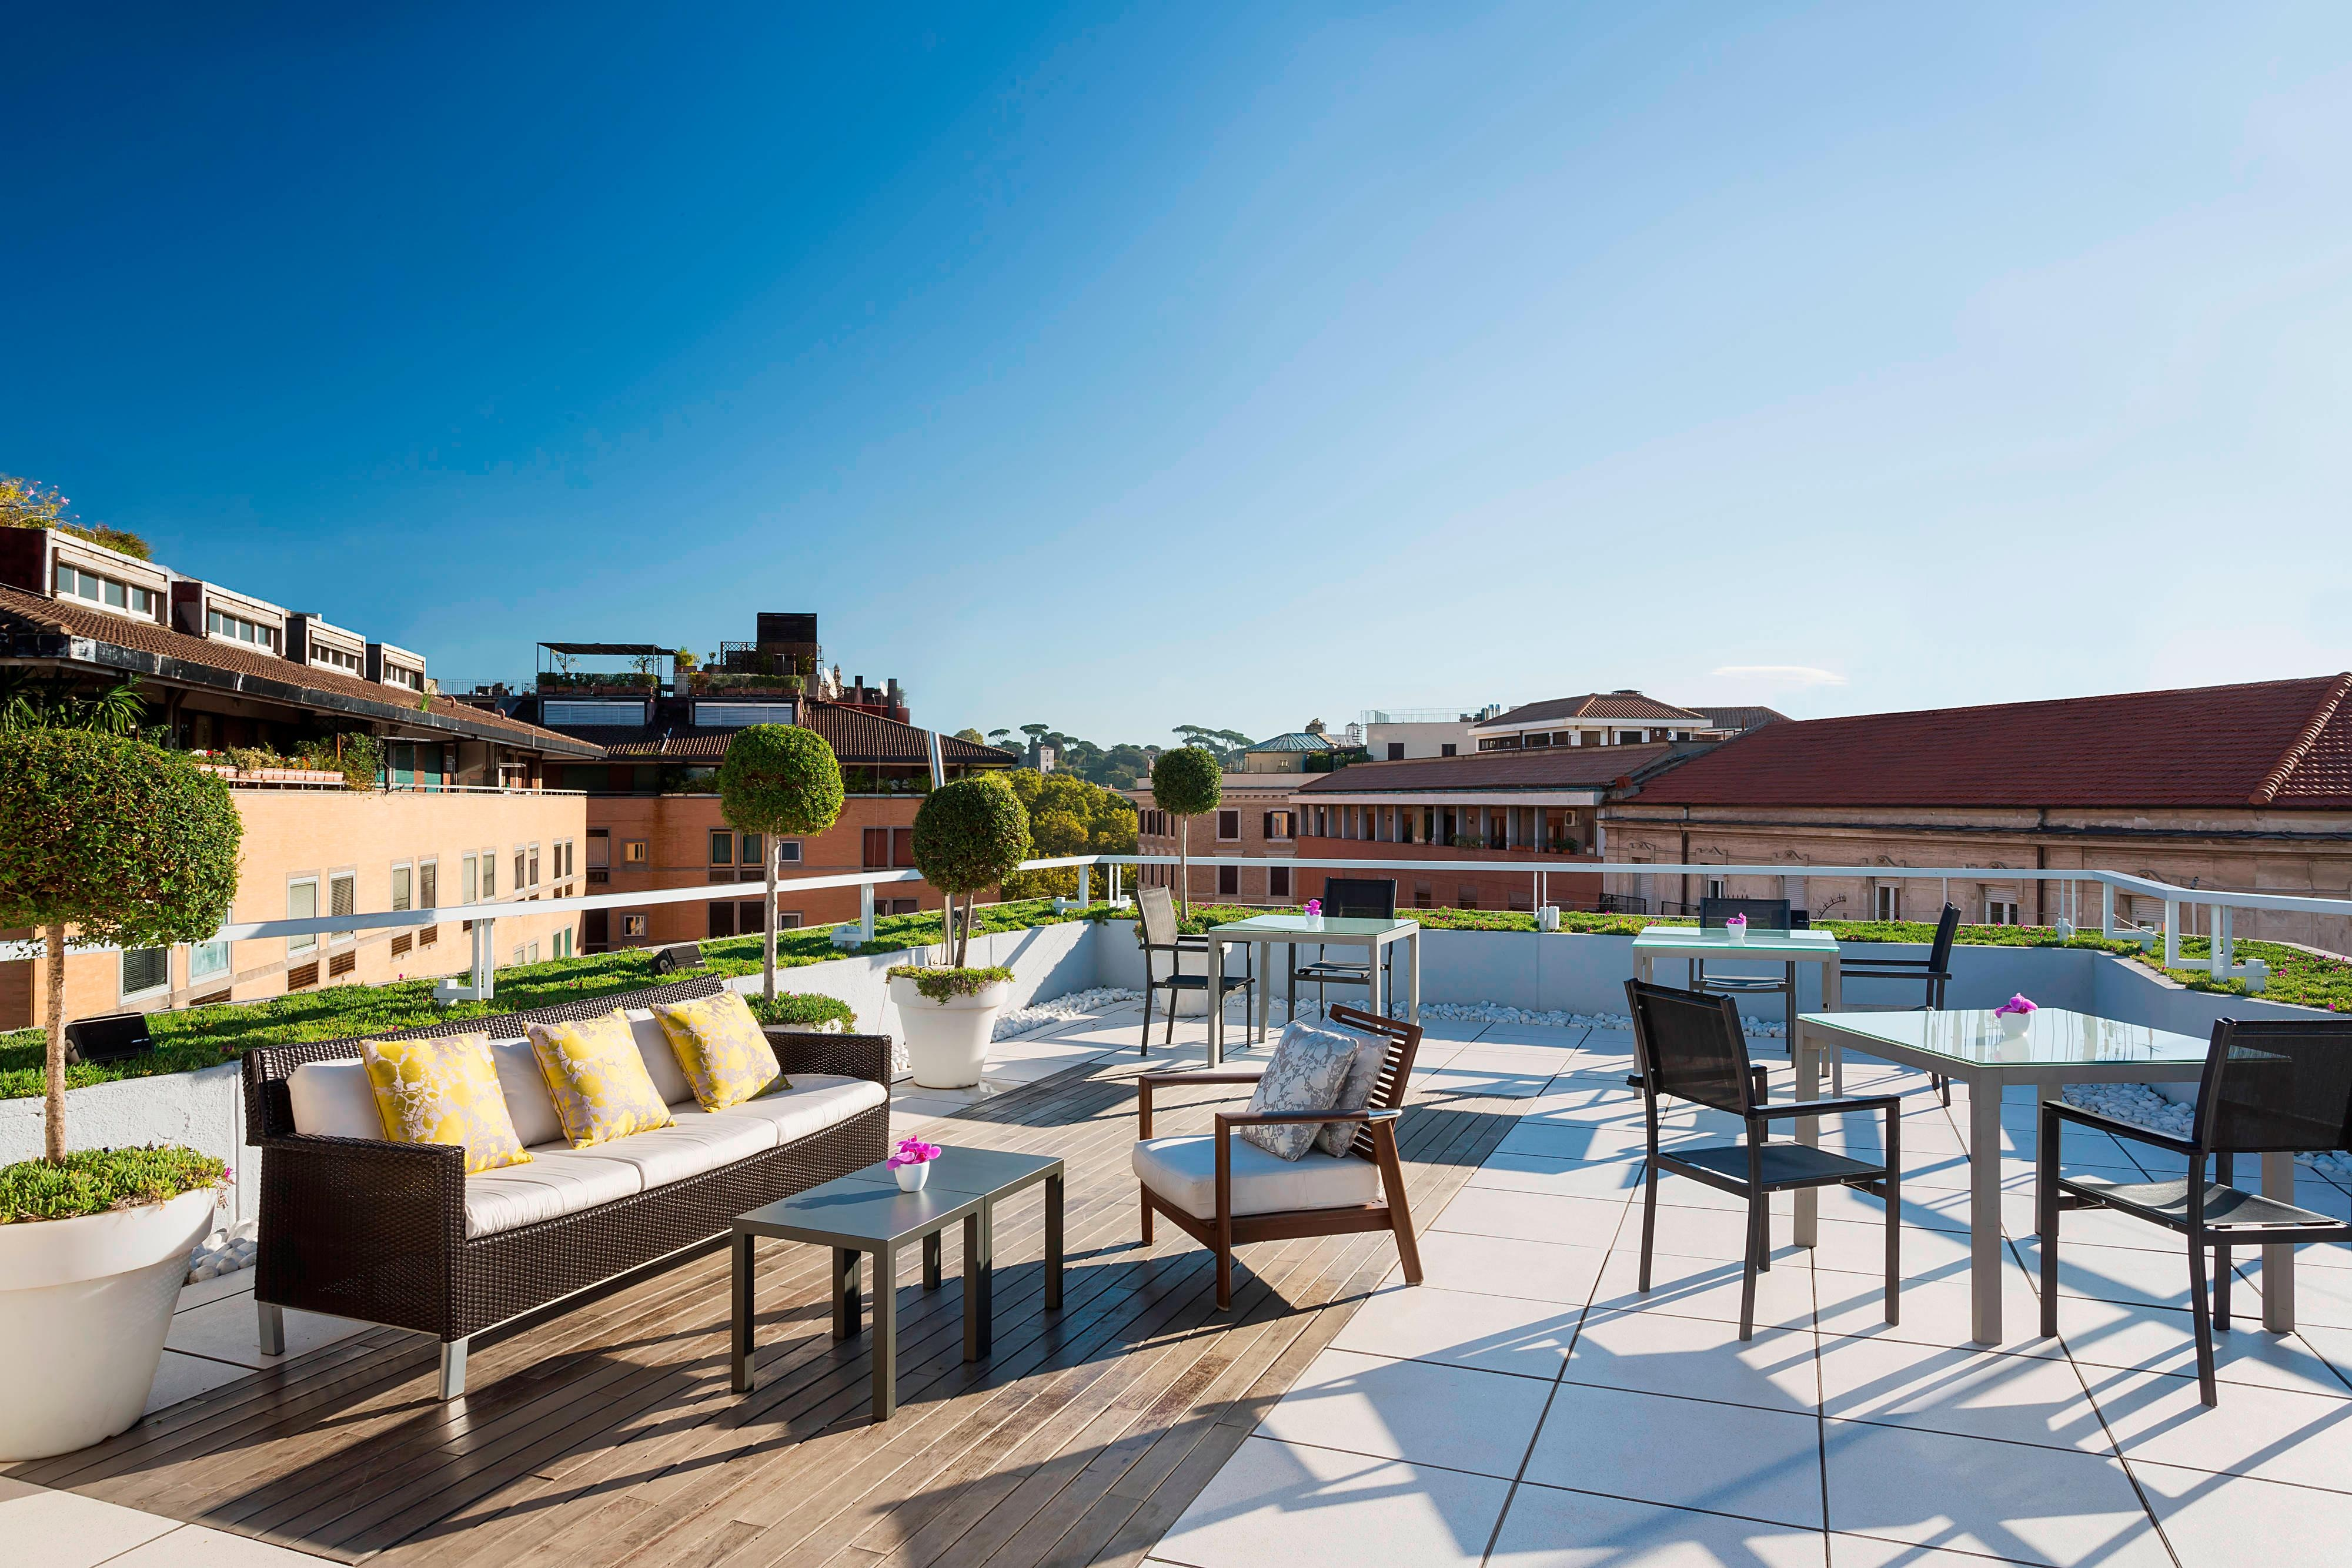 Roof 7 Terrace by day